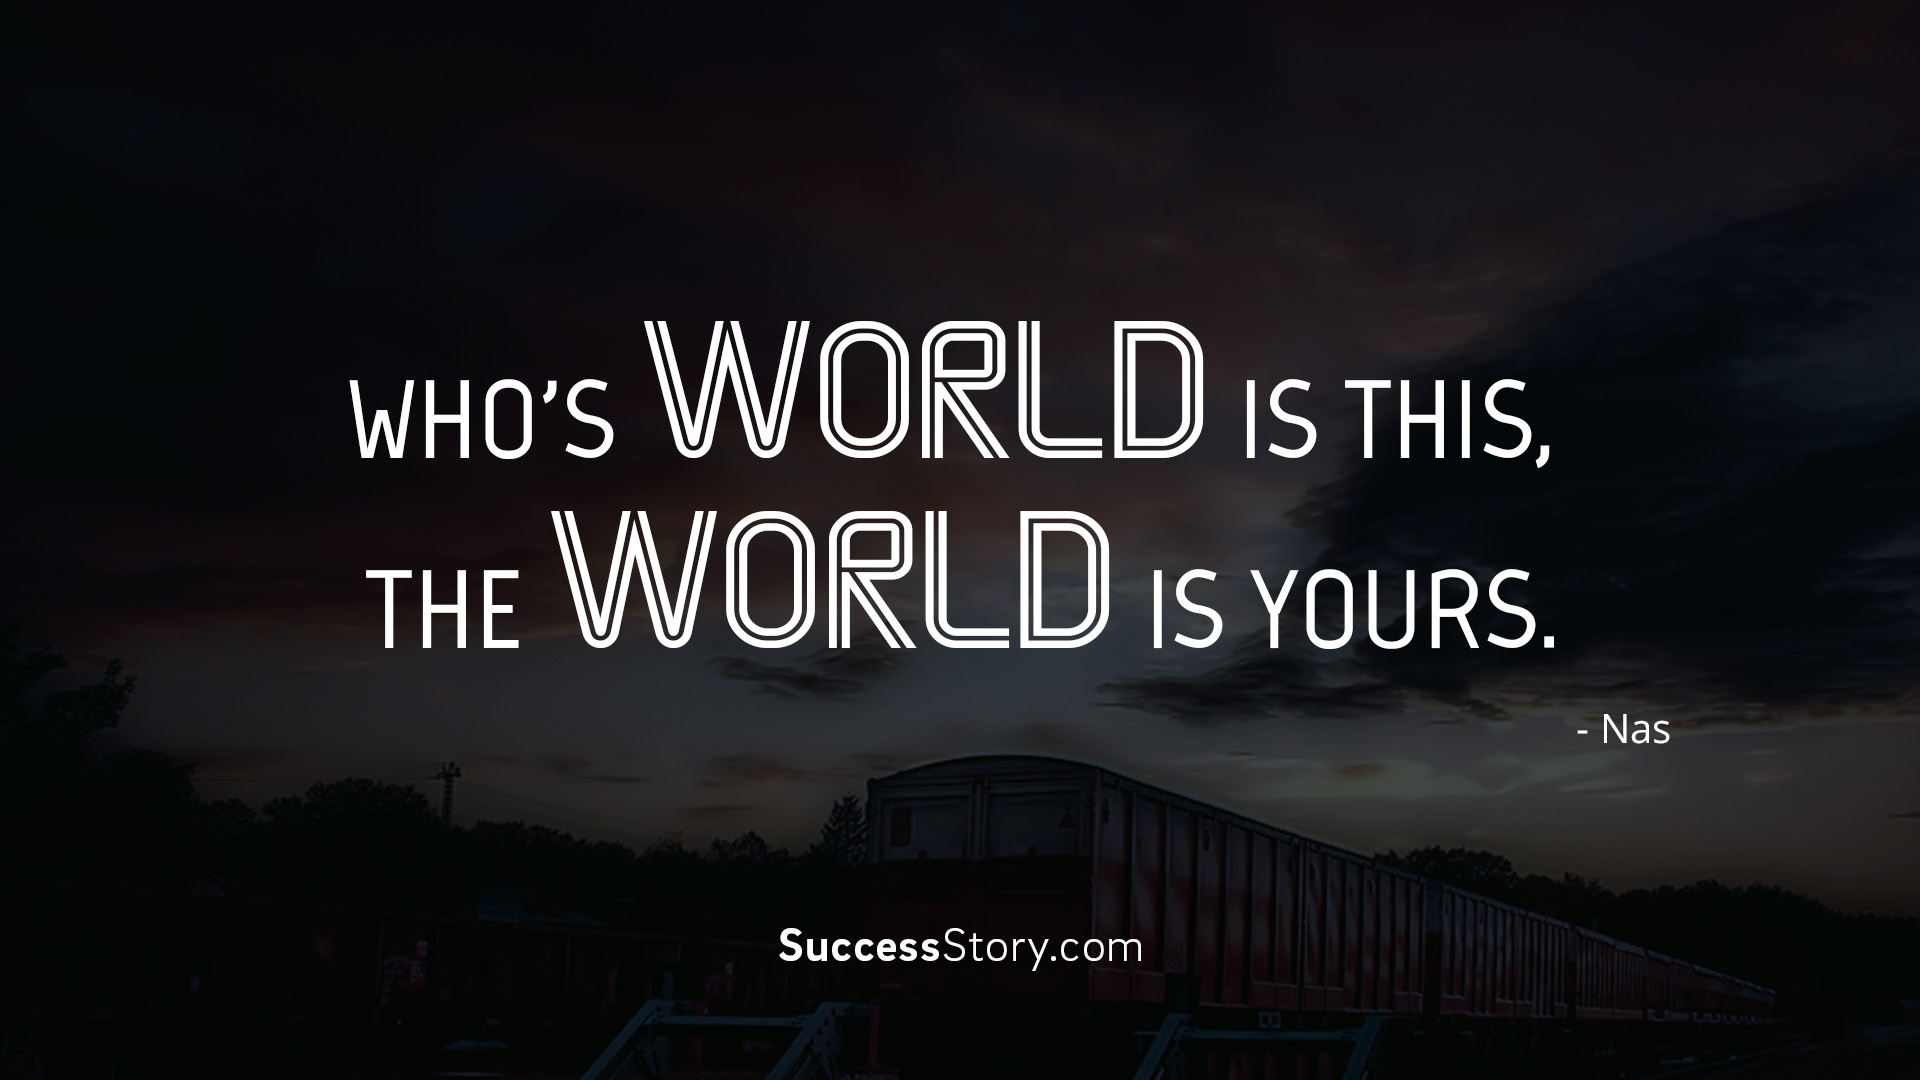 Who s world is this, the world is yours